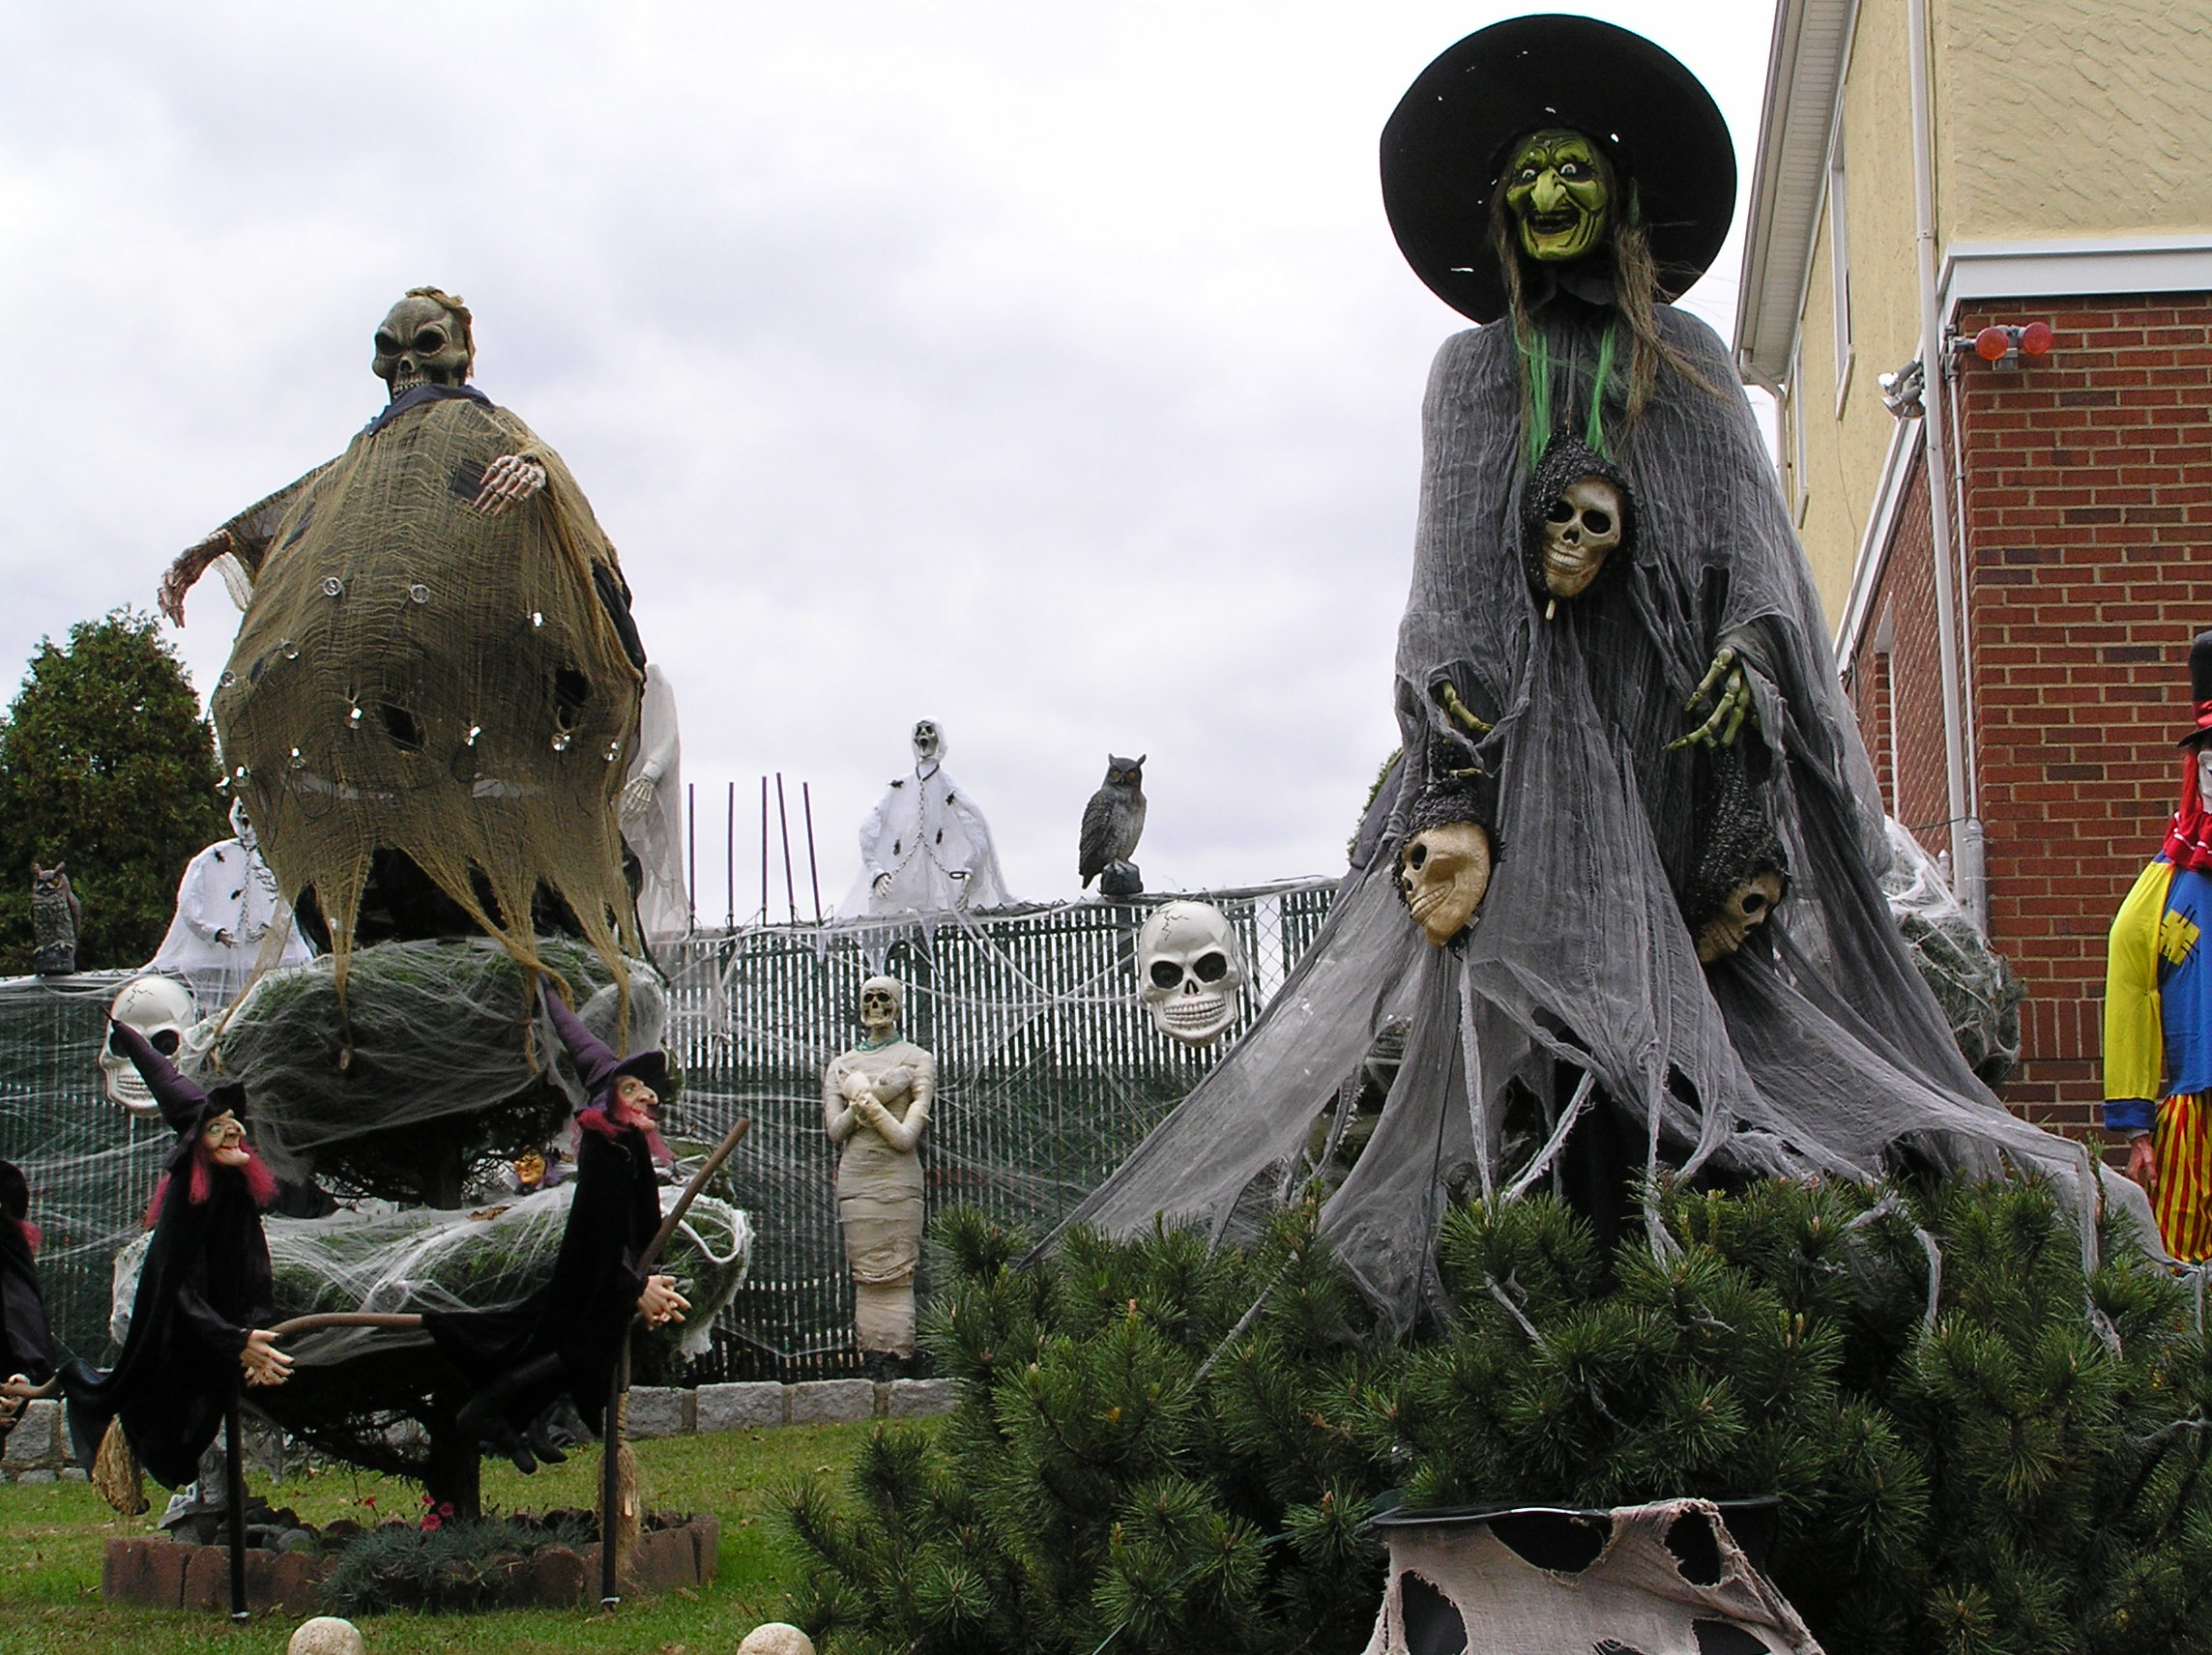 Outdoor Halloween Decorations for most scary witches statues